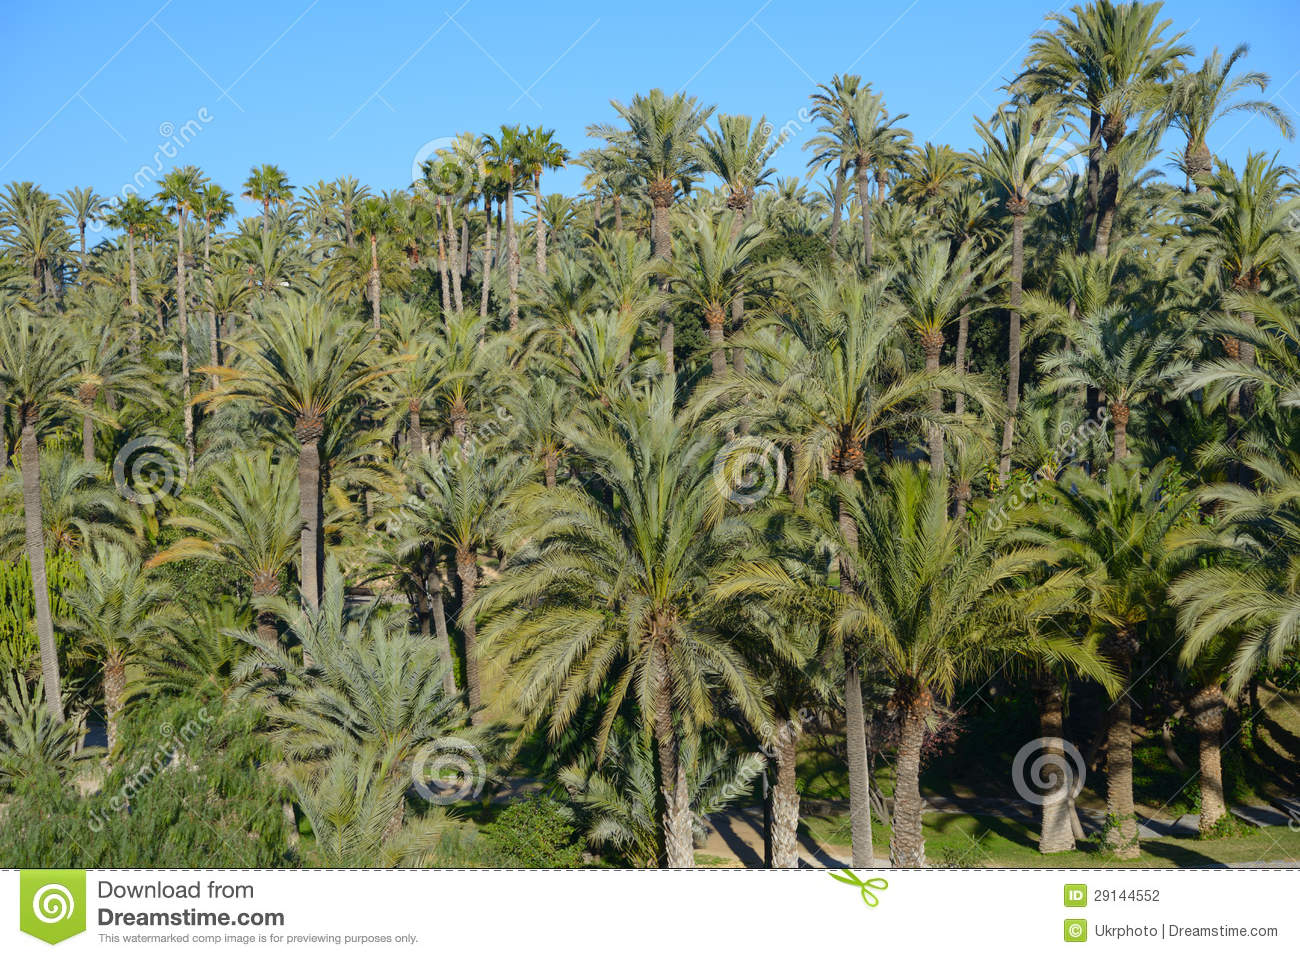 Palmeral Of Elche, Spain Stock Photography - Image: 29144552